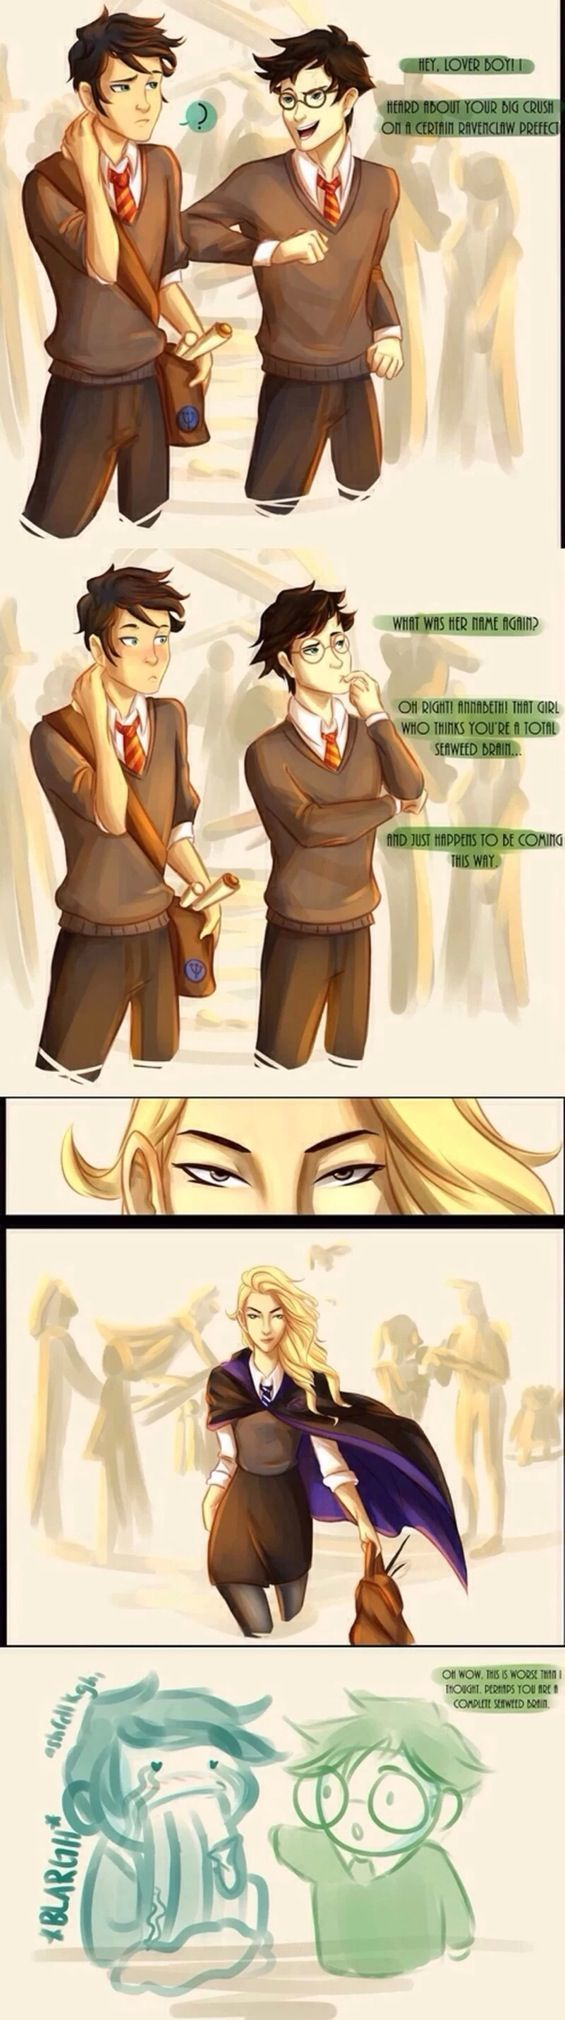 There Needs To Be More Percy Jackson Harry Potter Crossovers In The World This Would Be An A Percy Jackson Funny Percy Jackson Fan Art Percy Jackson Books